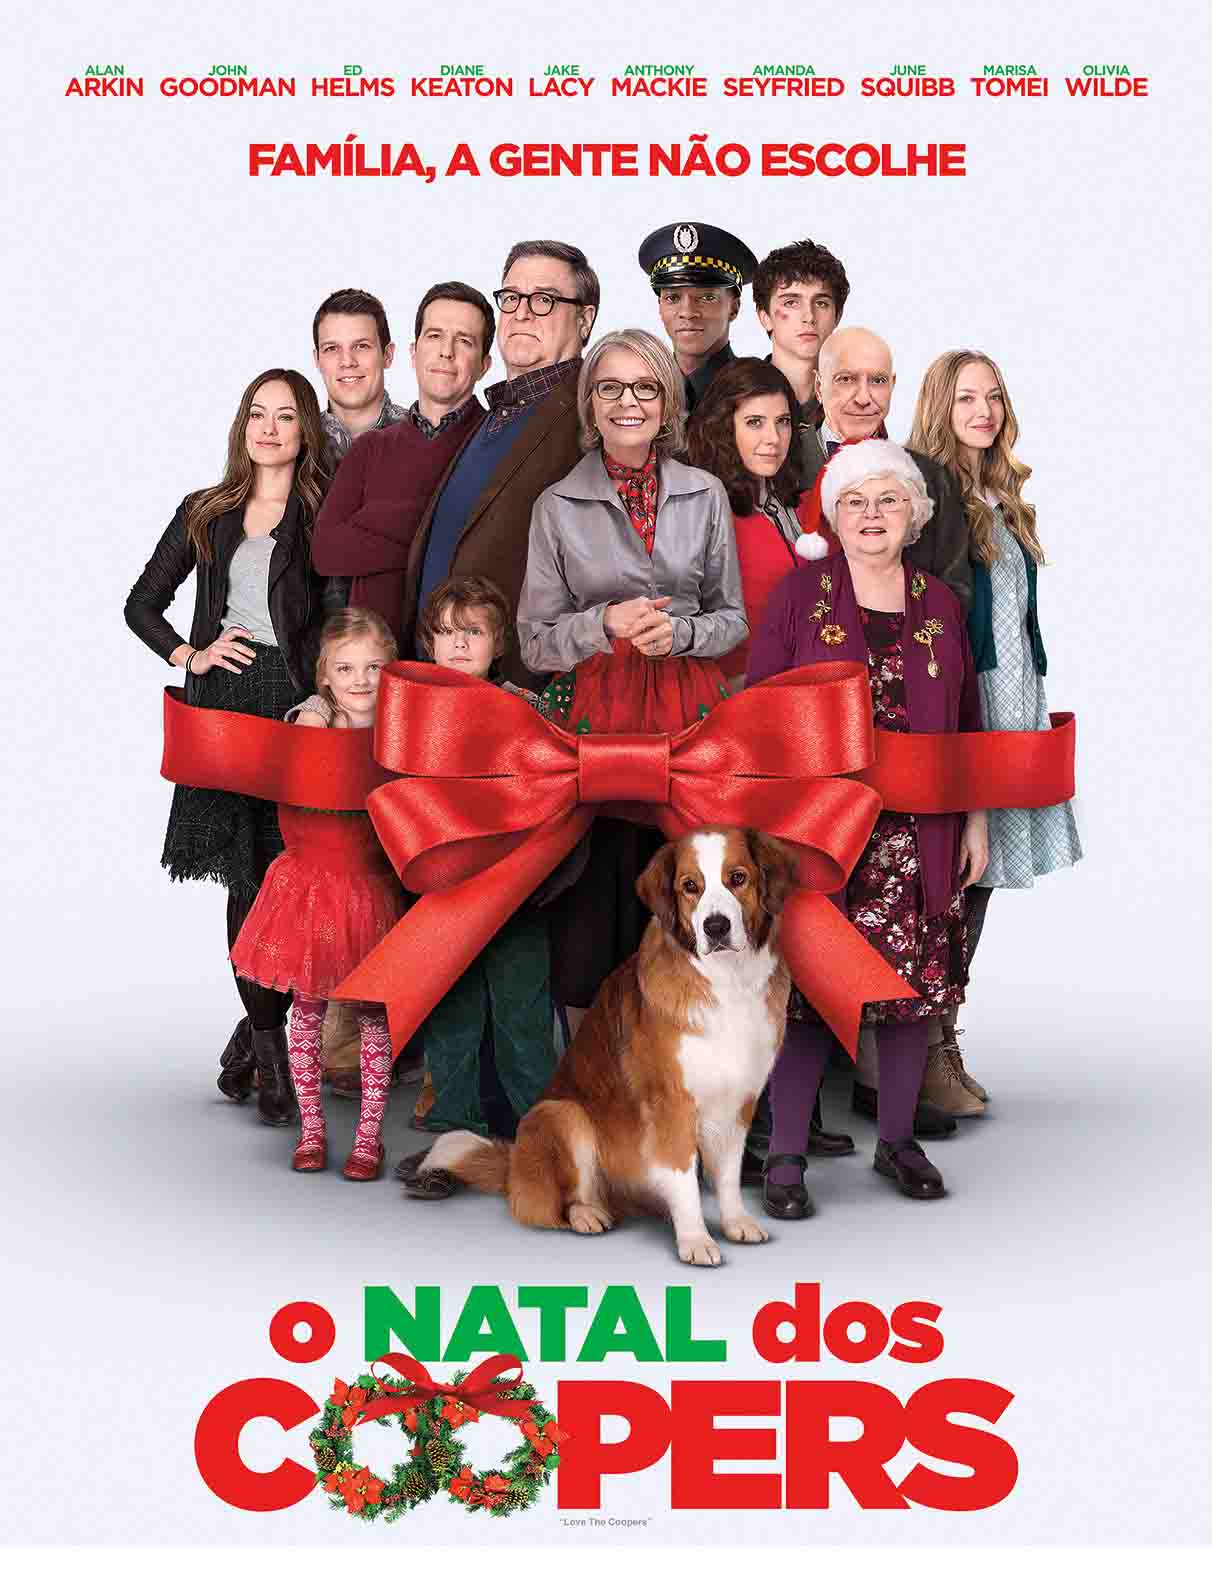 O Natal dos Coopers Torrent – Blu-ray Rip 720p e 1080p Dual Áudio (2016)